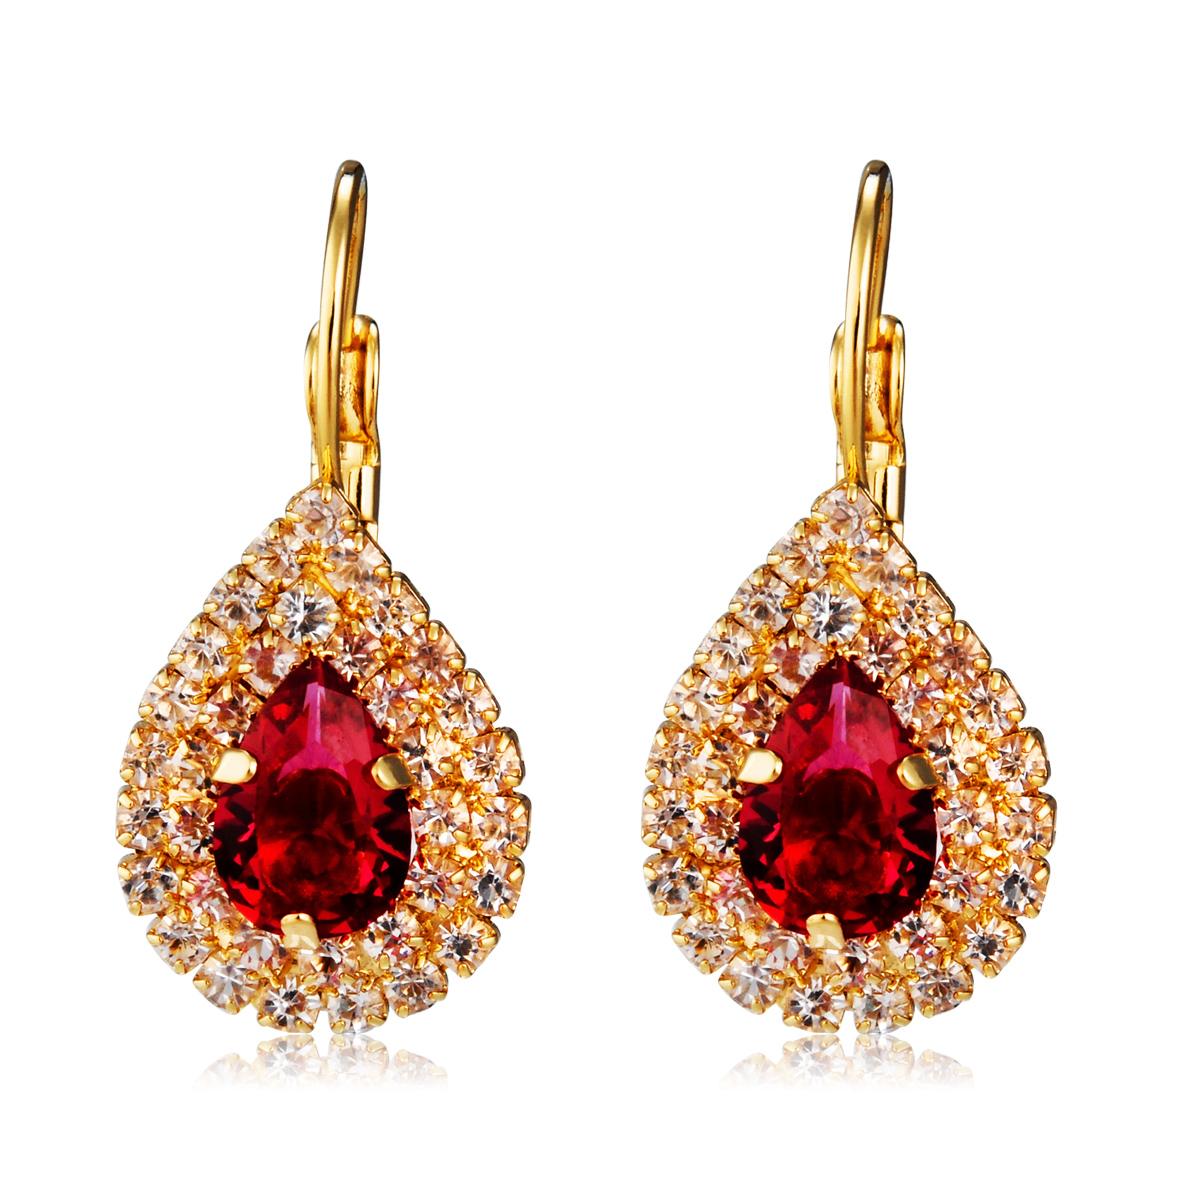 Details about Ruby 18K Rose Gold Plated Made with Swarovski Crystal Wedding  Piercing Earrings